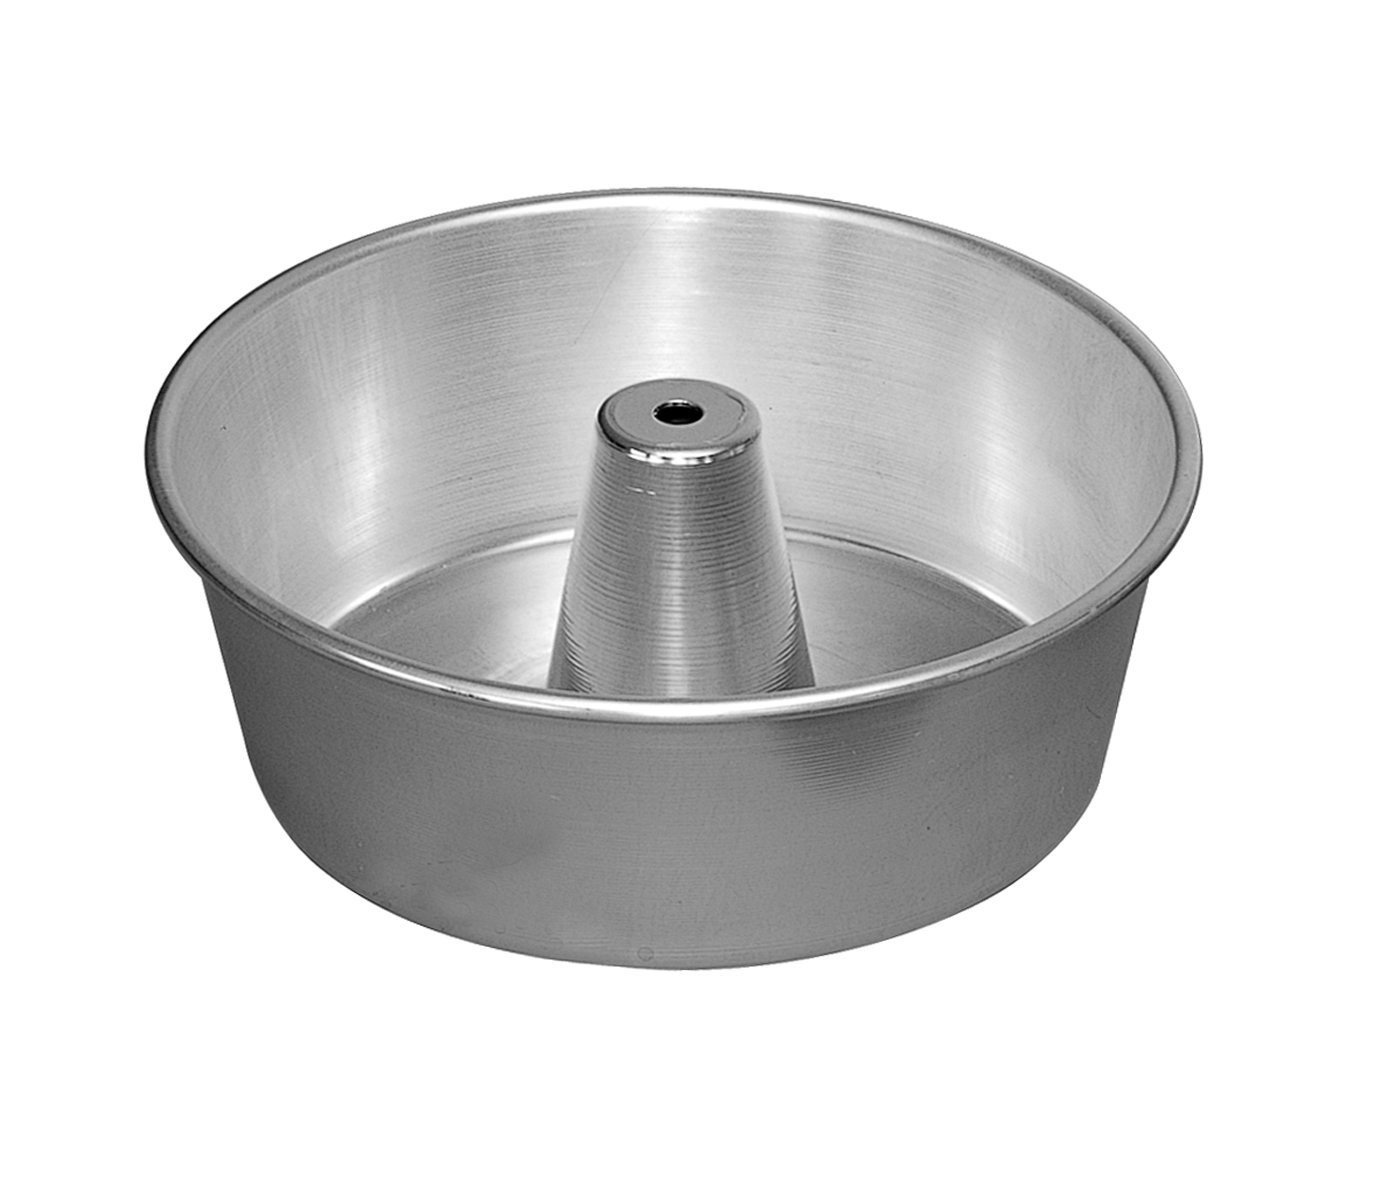 Parrish Magic Line 10 Inch x 3.75 Inch Angel Food Pan, Solid Bottom